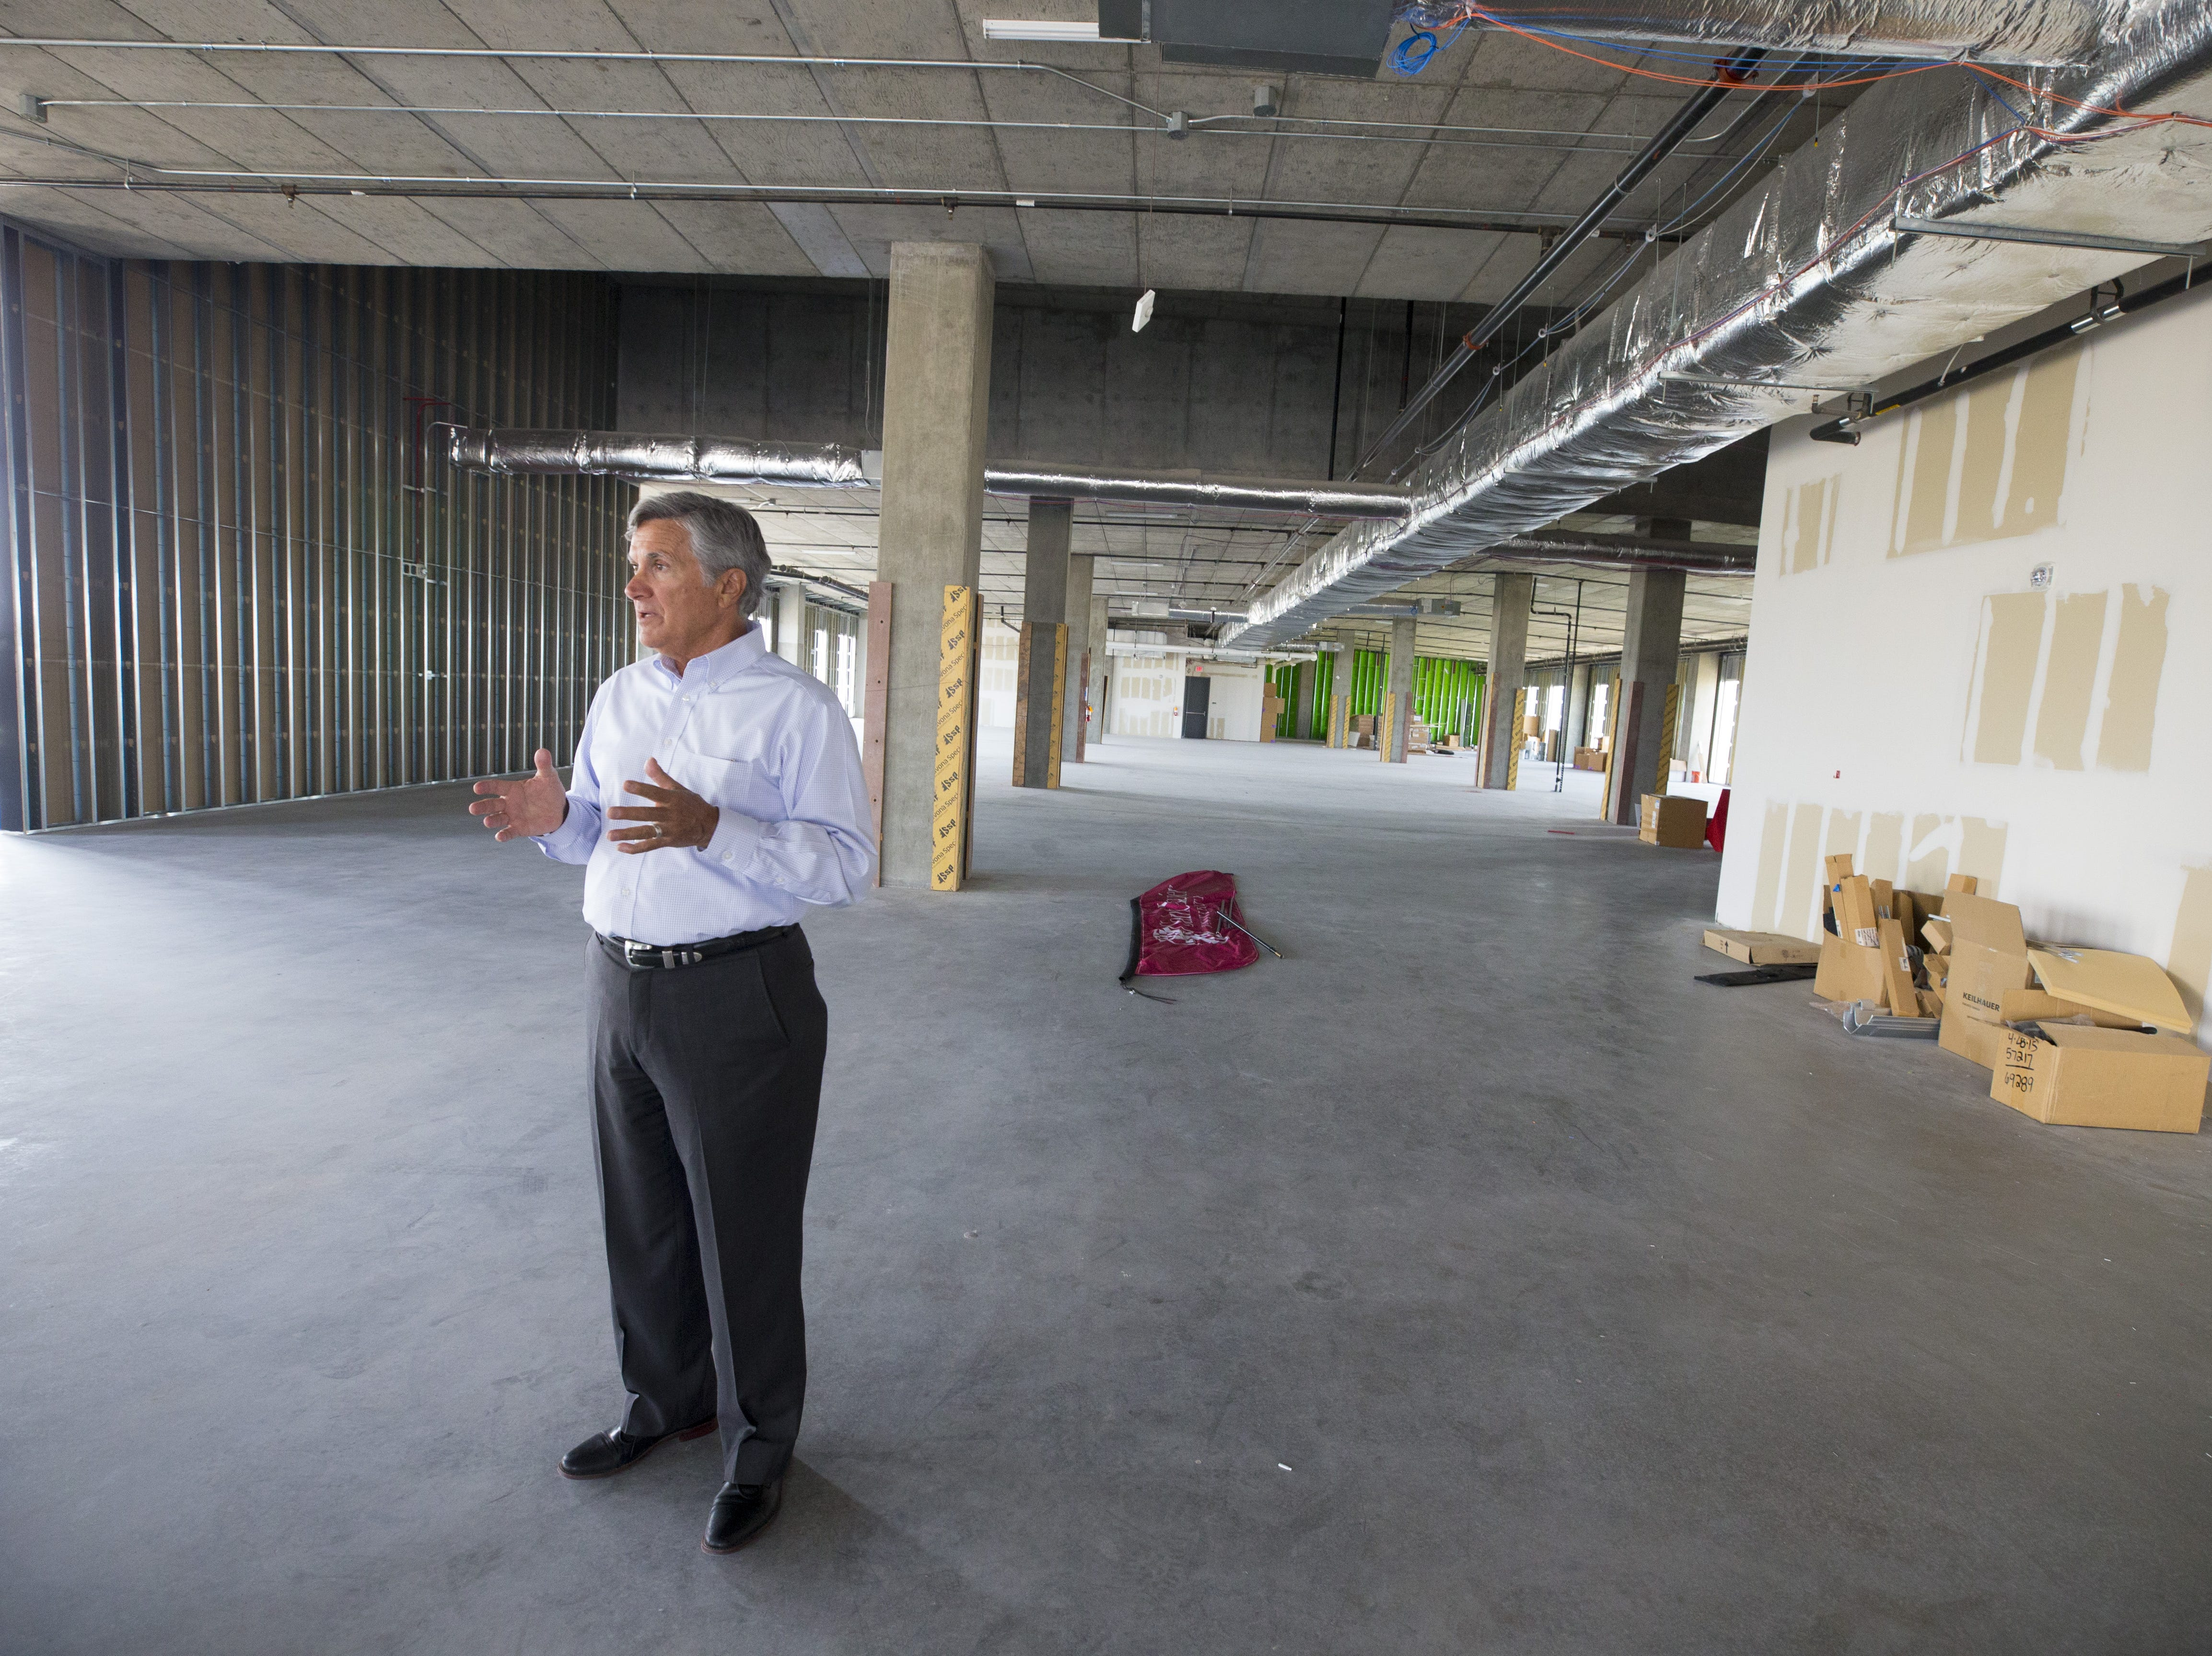 Dr. Jeff Ehrlich, executive director of Park University Gilbert campus tours the Gilbert University Building. The fourth floor of the building is unfinished.